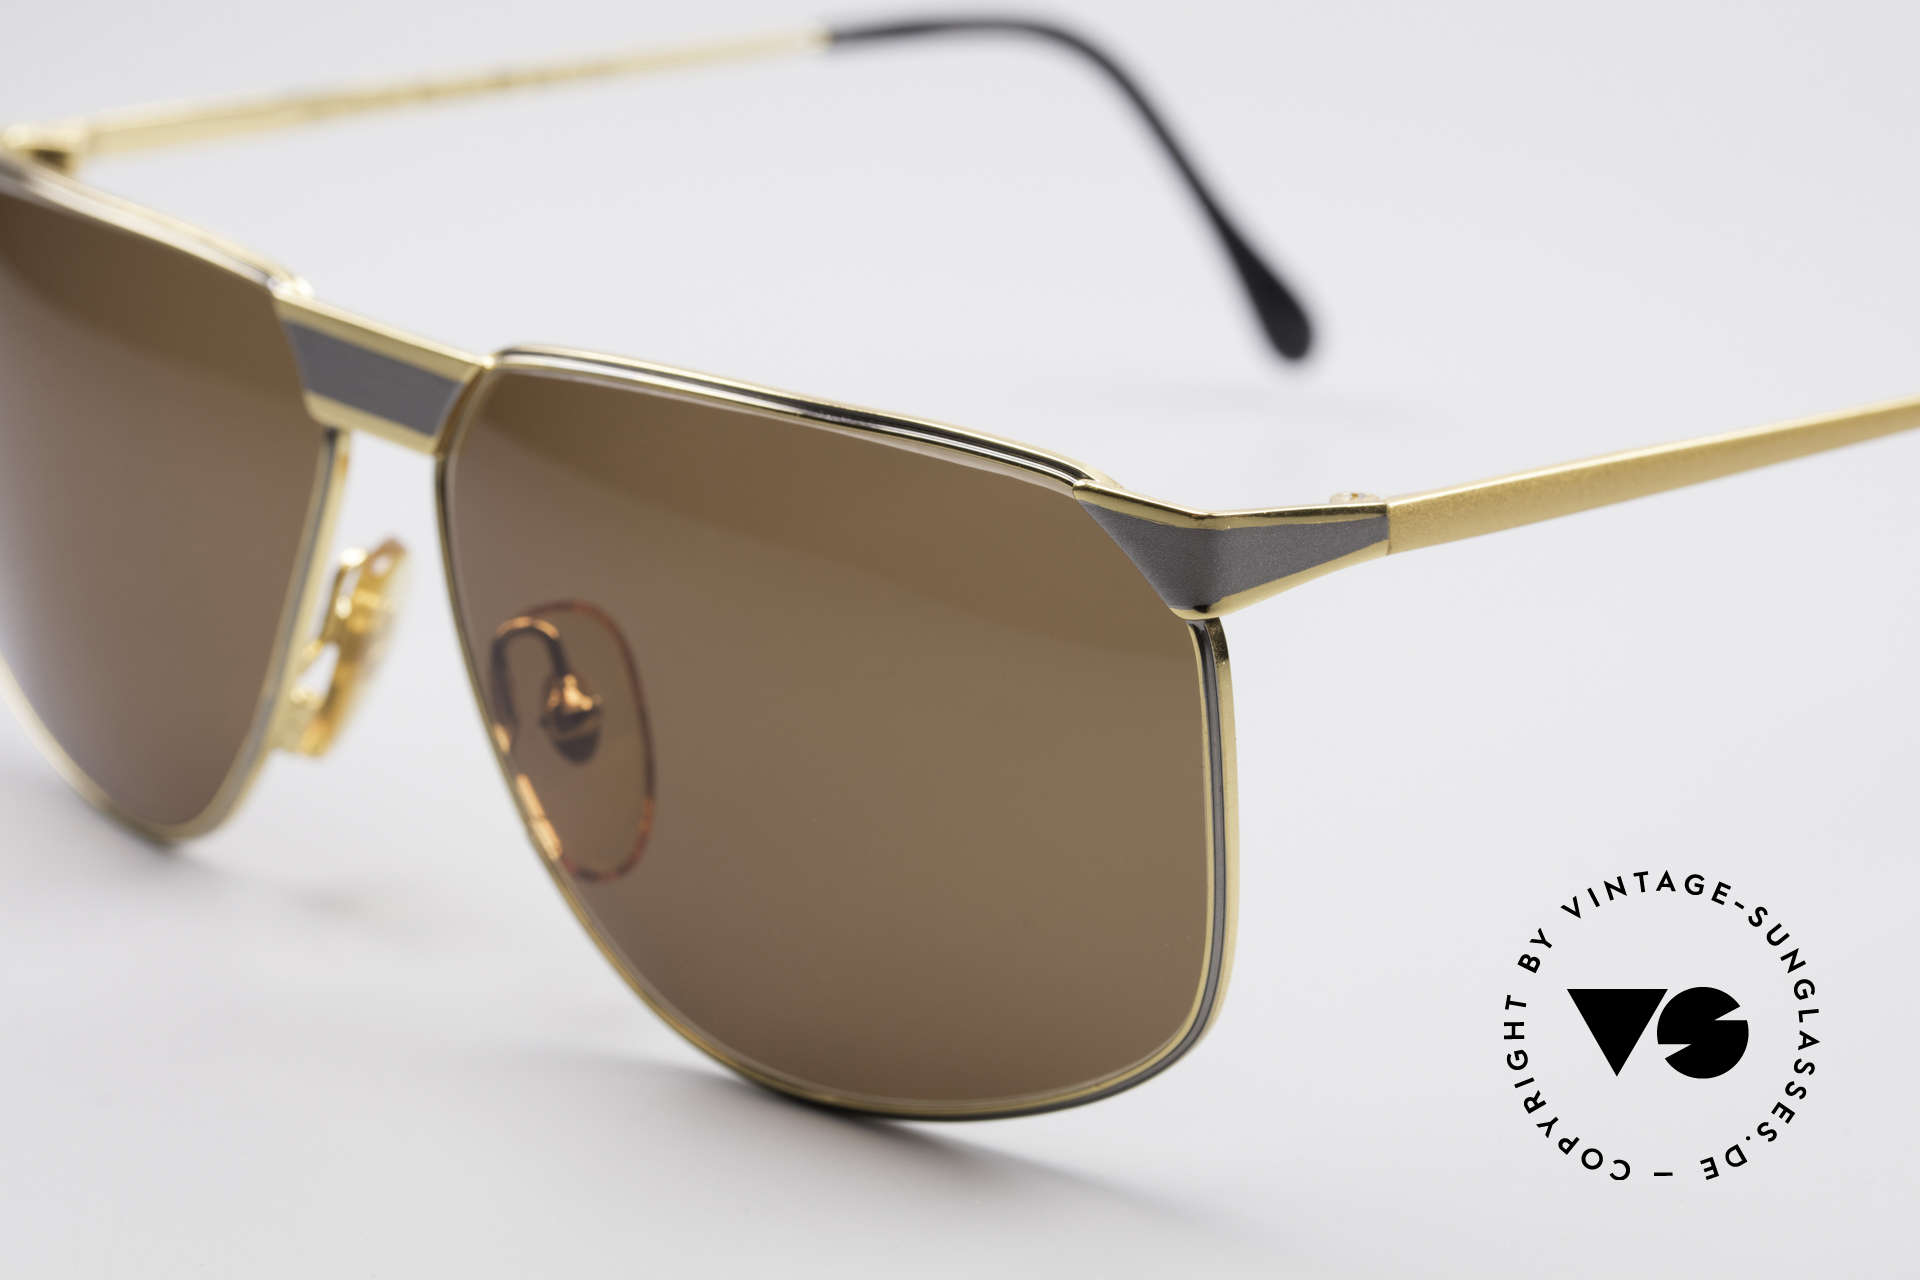 Casanova NM7 24KT Gold Plated Shades, unworn (like all our valuable old 80's sunglasses), Made for Men and Women